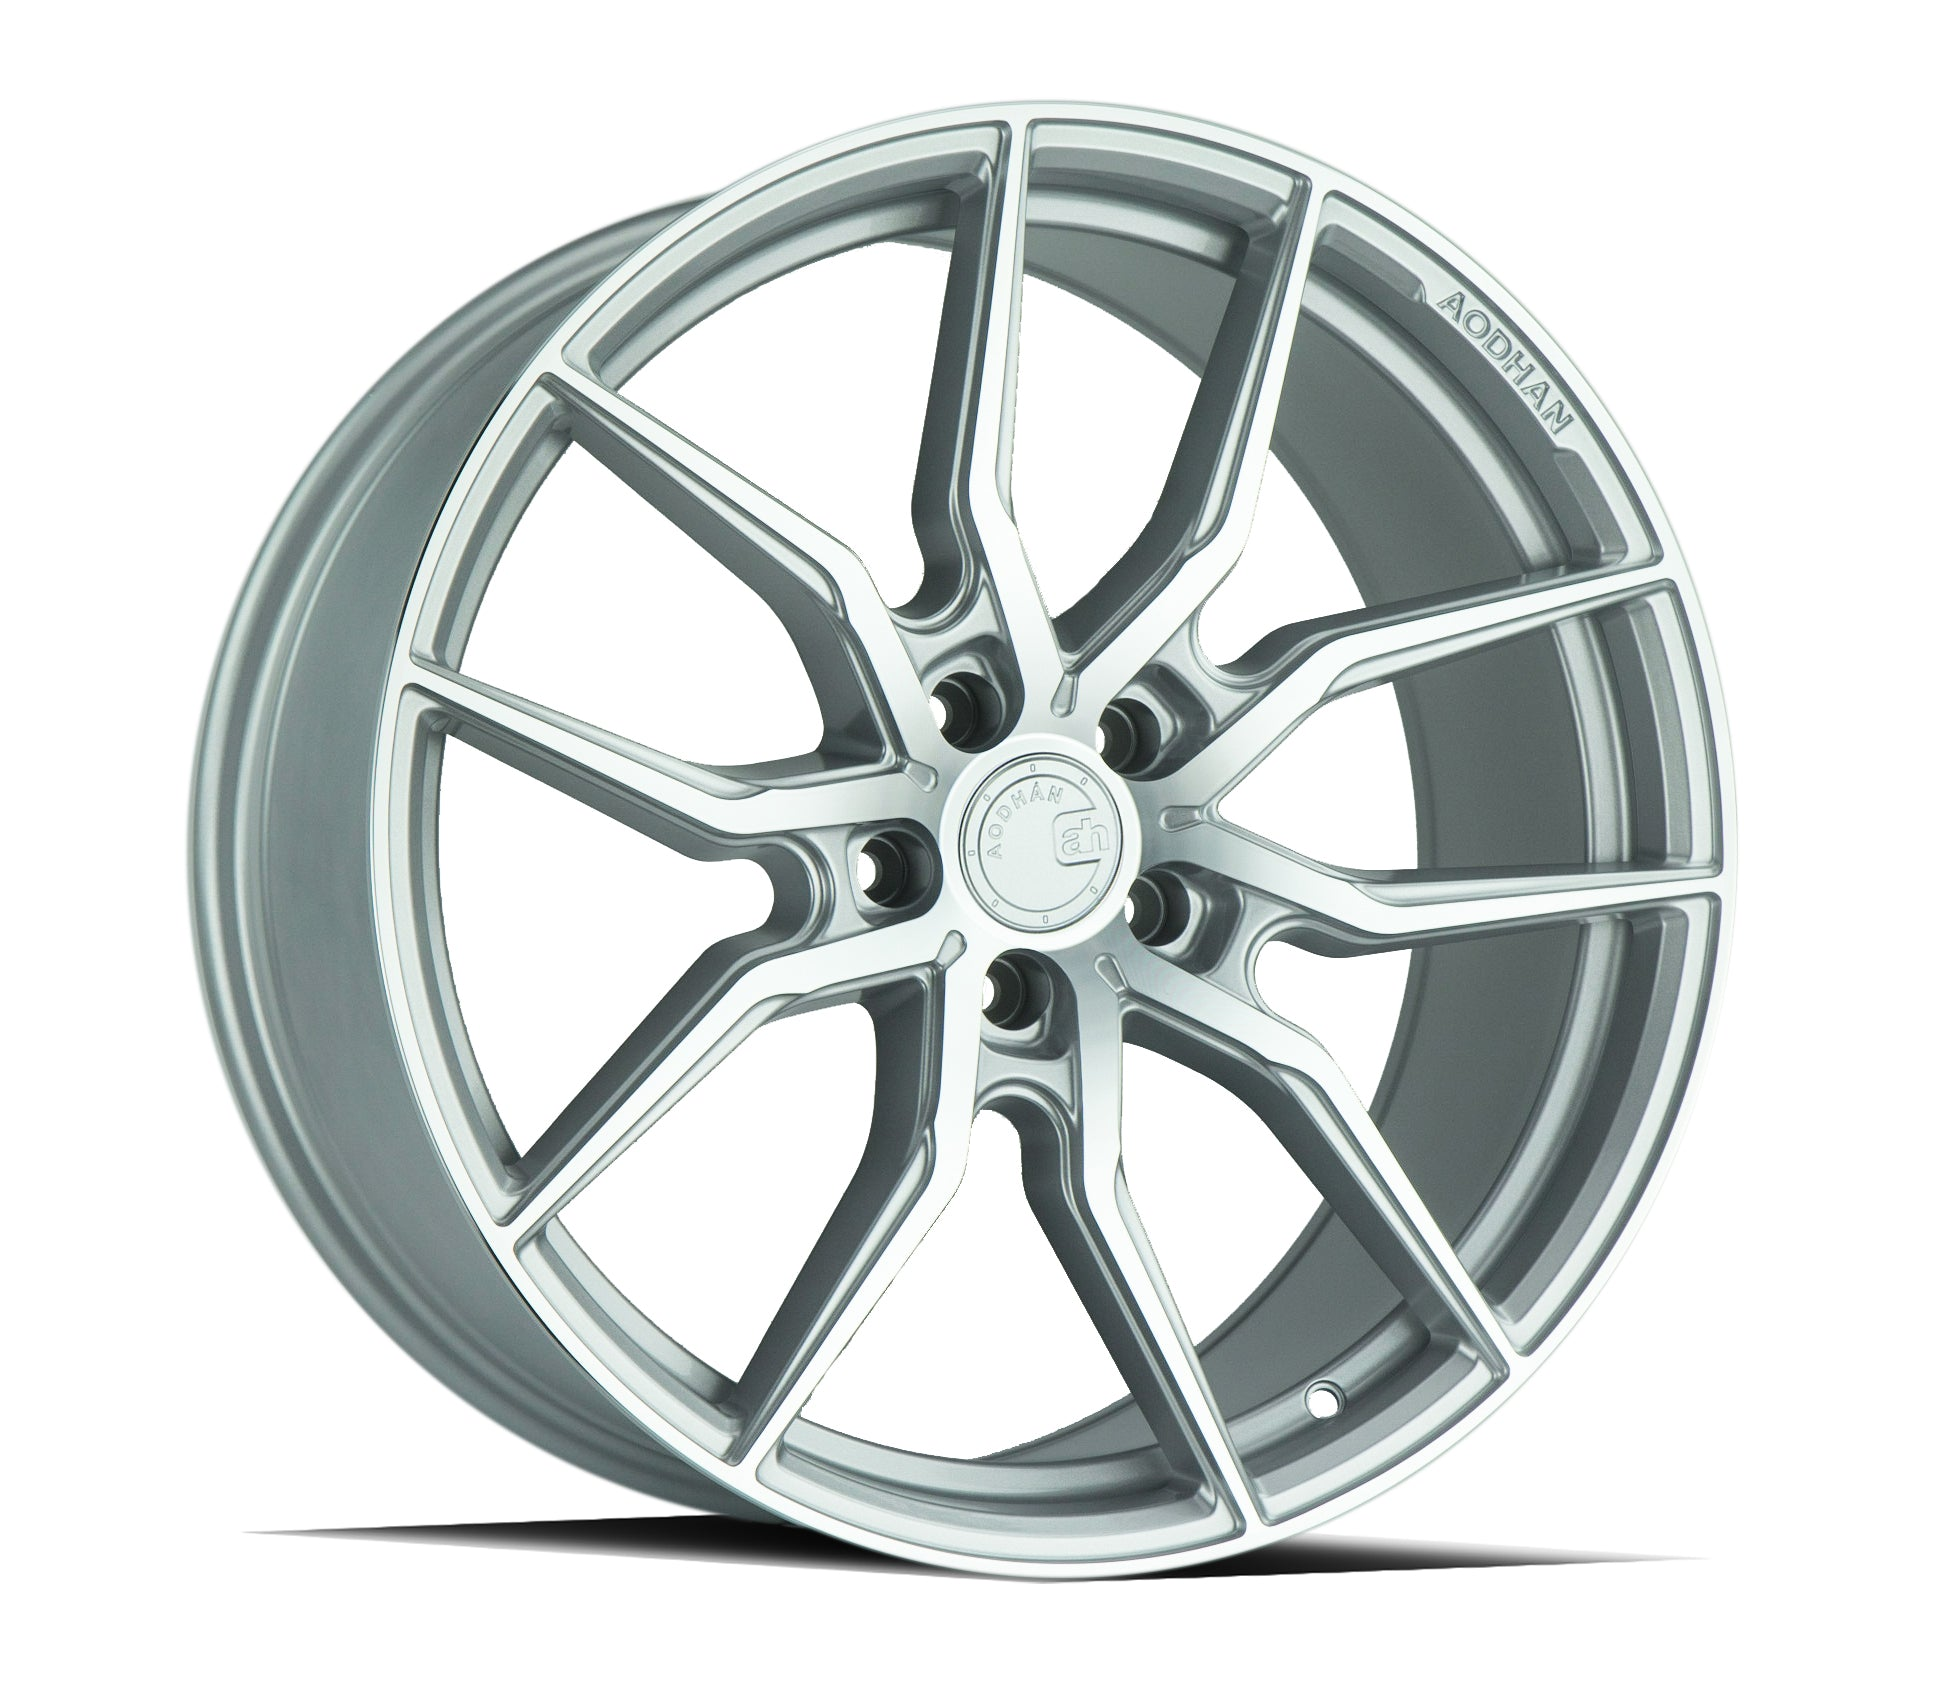 Aodhan AFF1 20x9 5x120 +30 Gloss Silver Machined Face